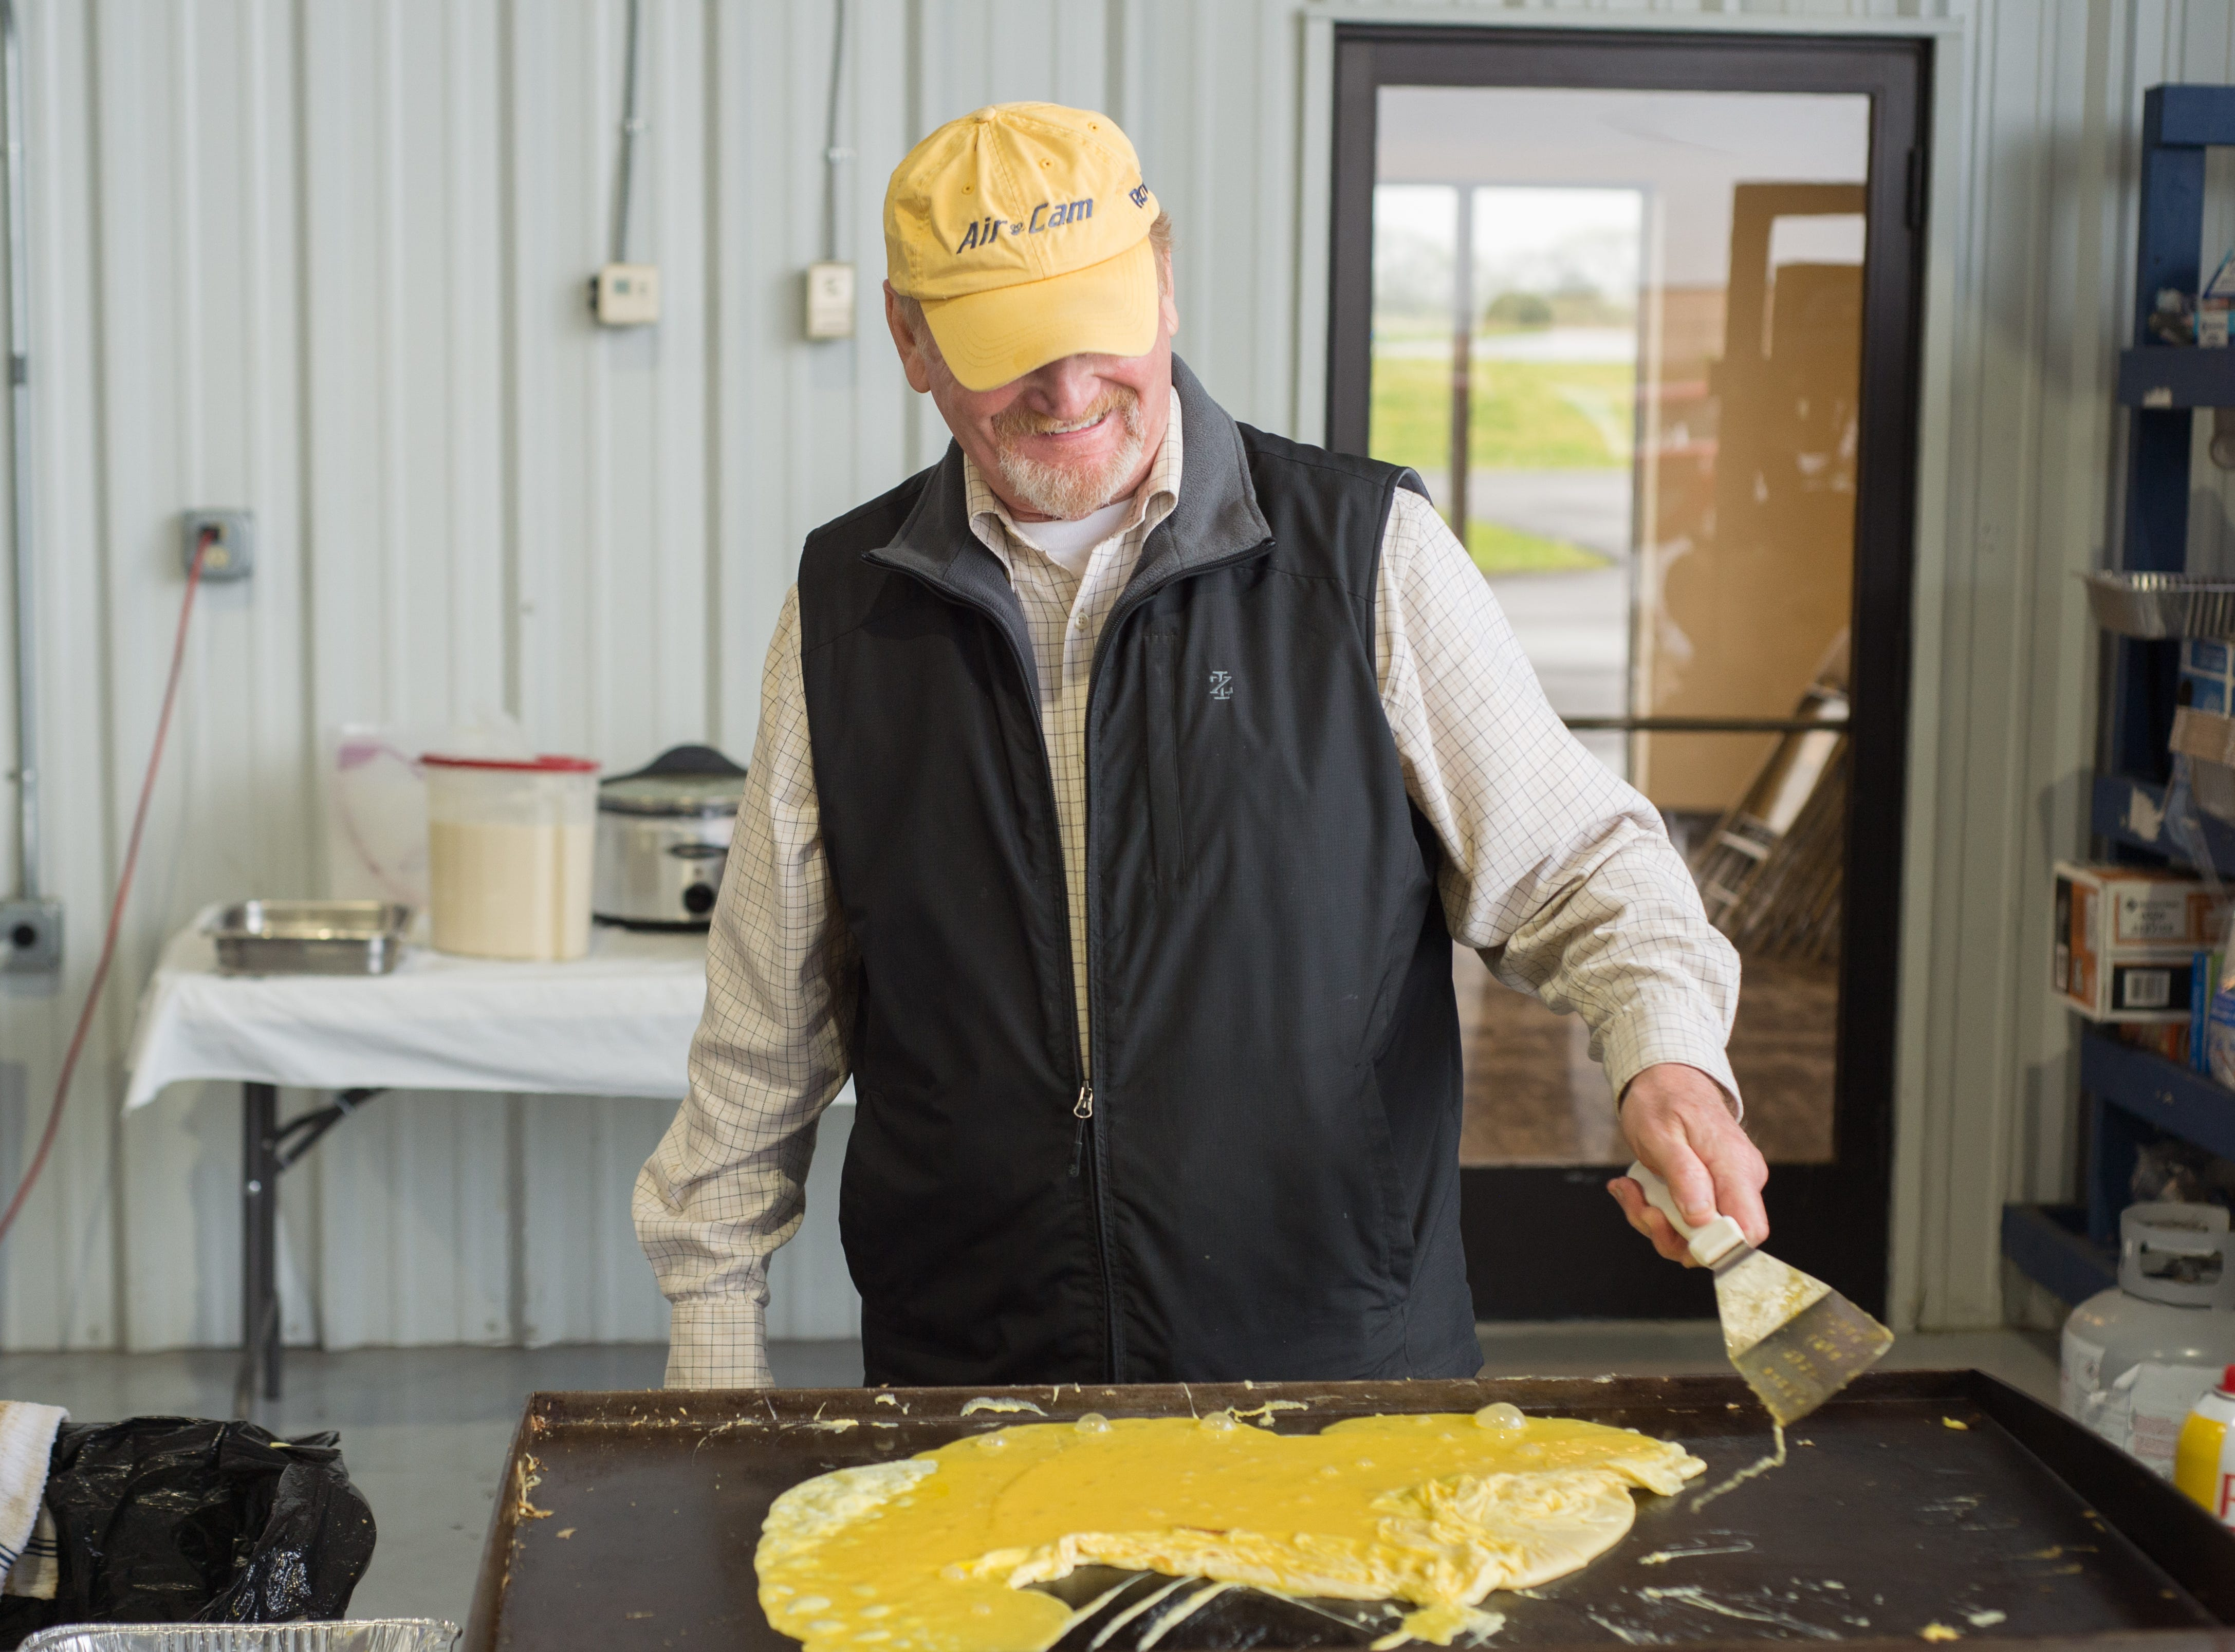 Jim Johnson helps make a delicious breakfast during a Fly-In Breakfast at the Sumner County Regional Airport in Gallatin on Saturday, April 13.